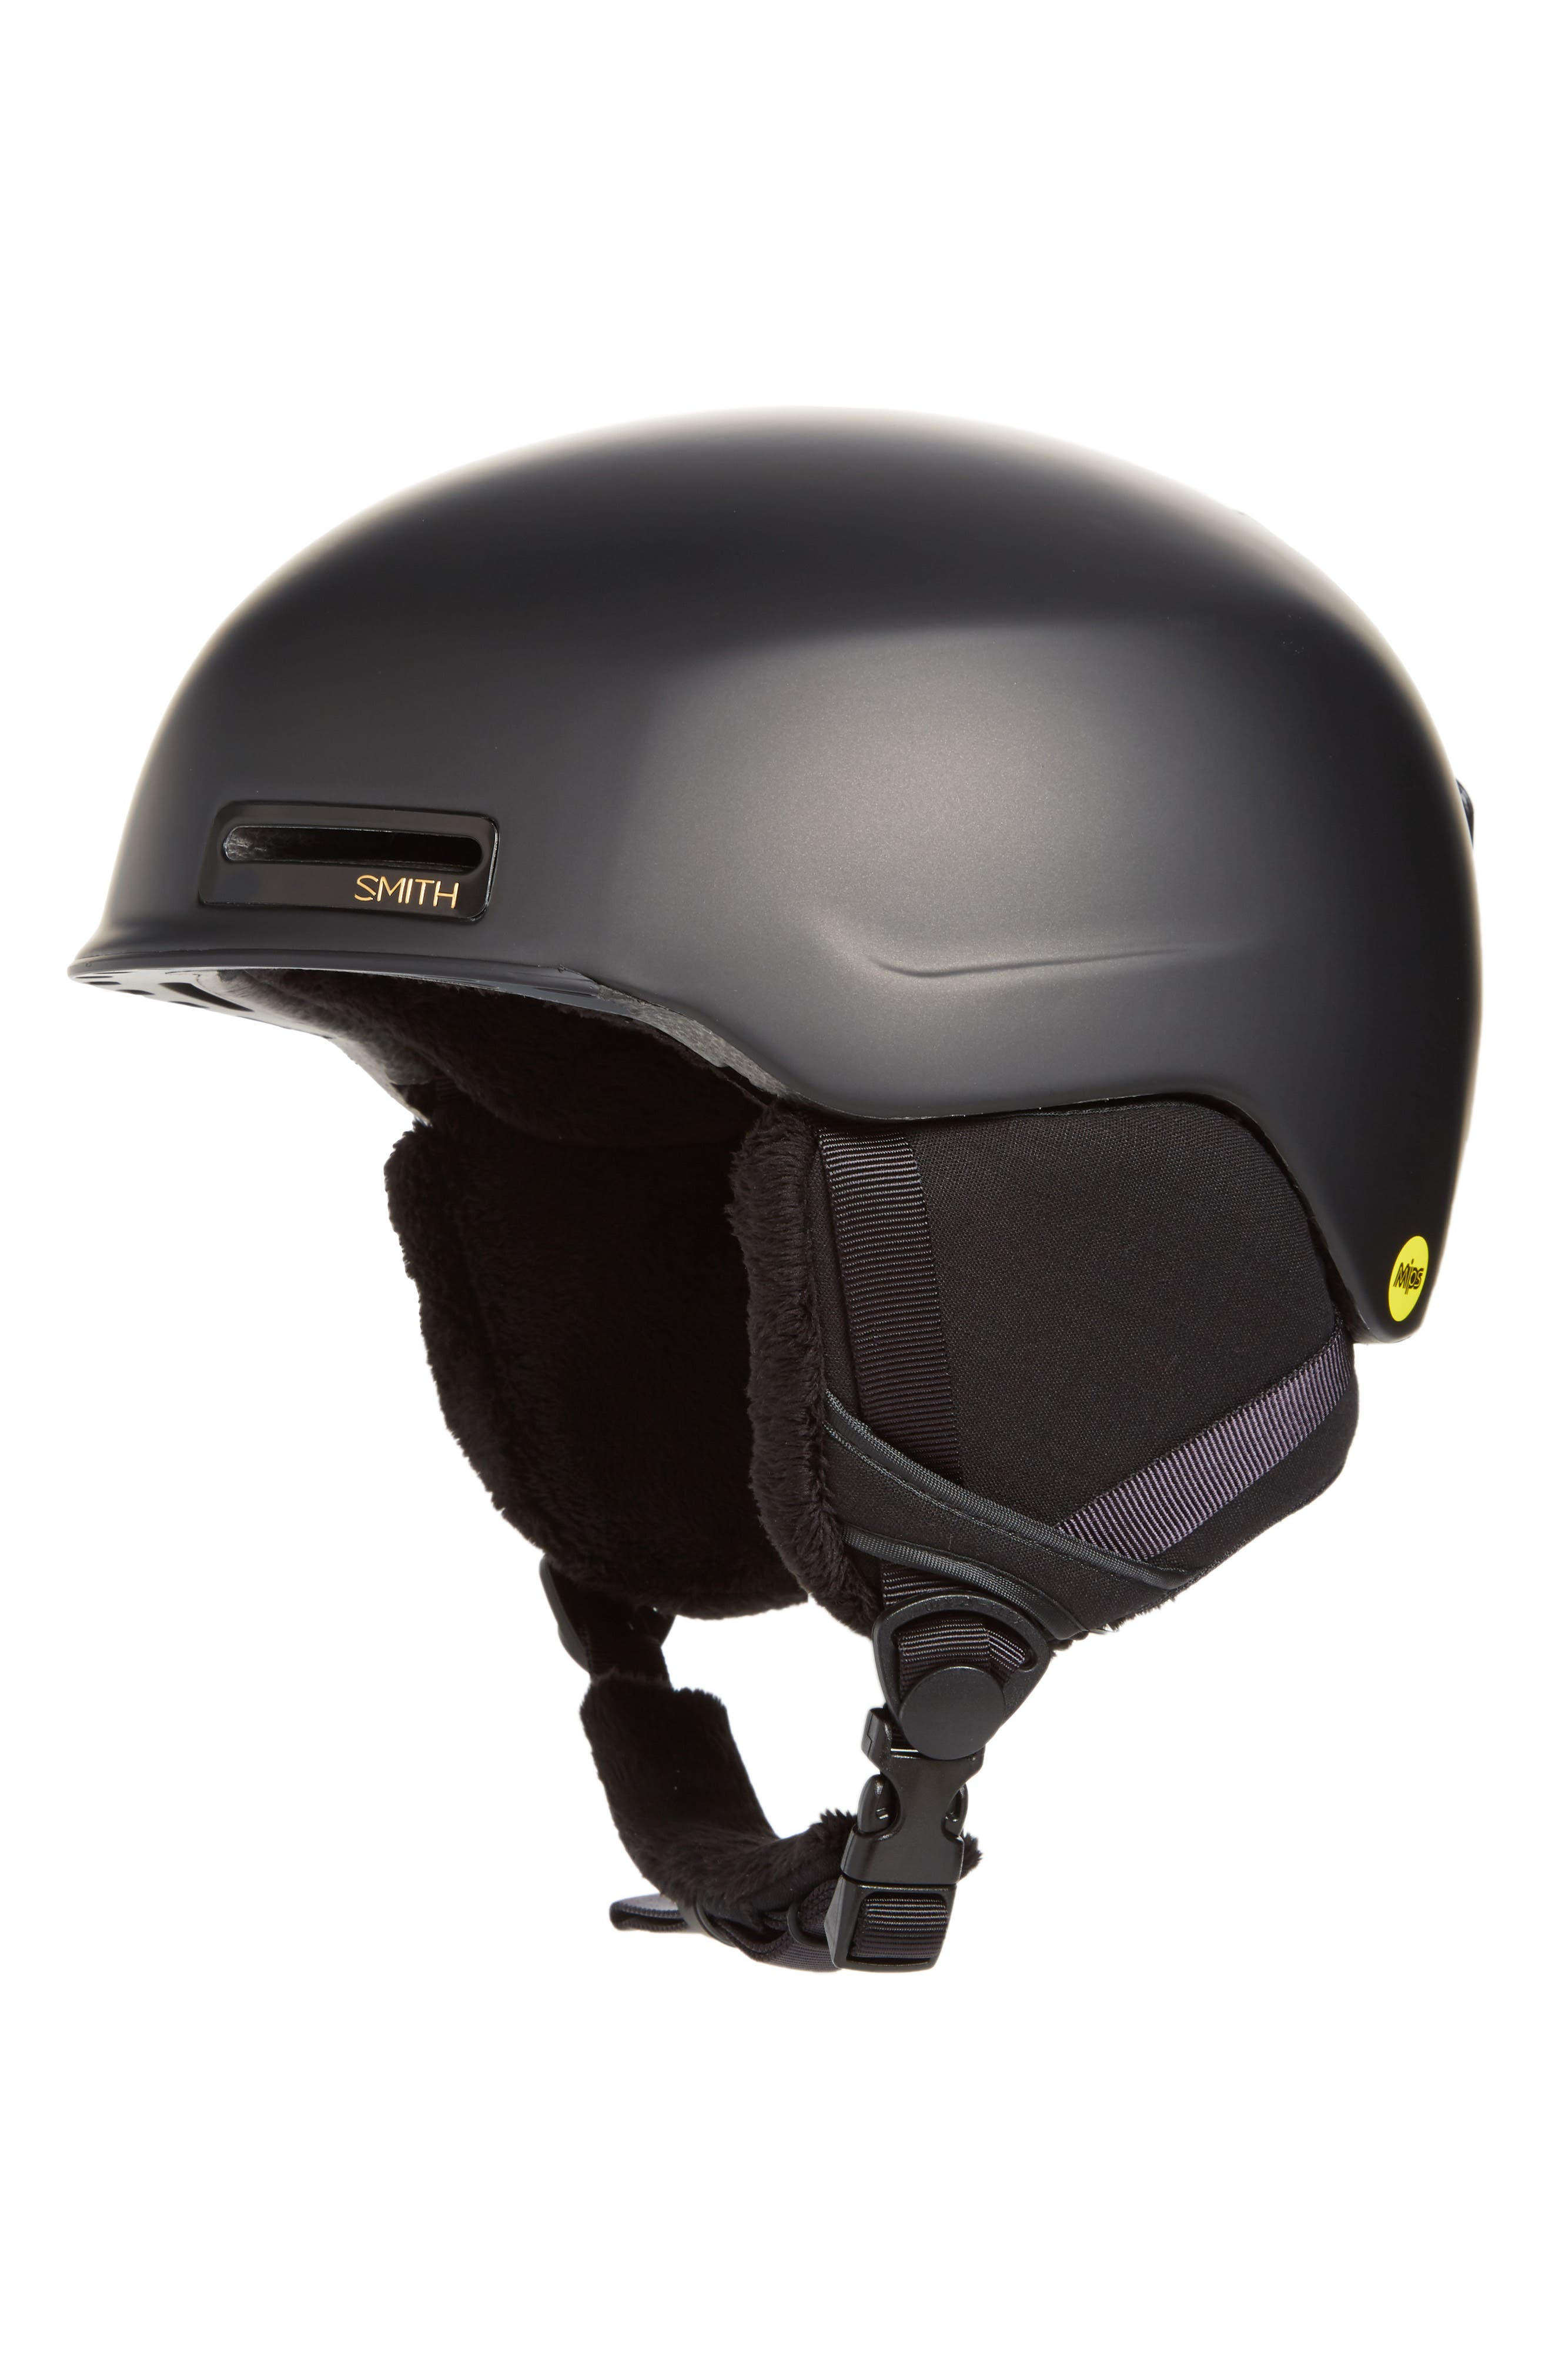 Smith ALLURE SNOW HELMET WITH MIPS - PINK